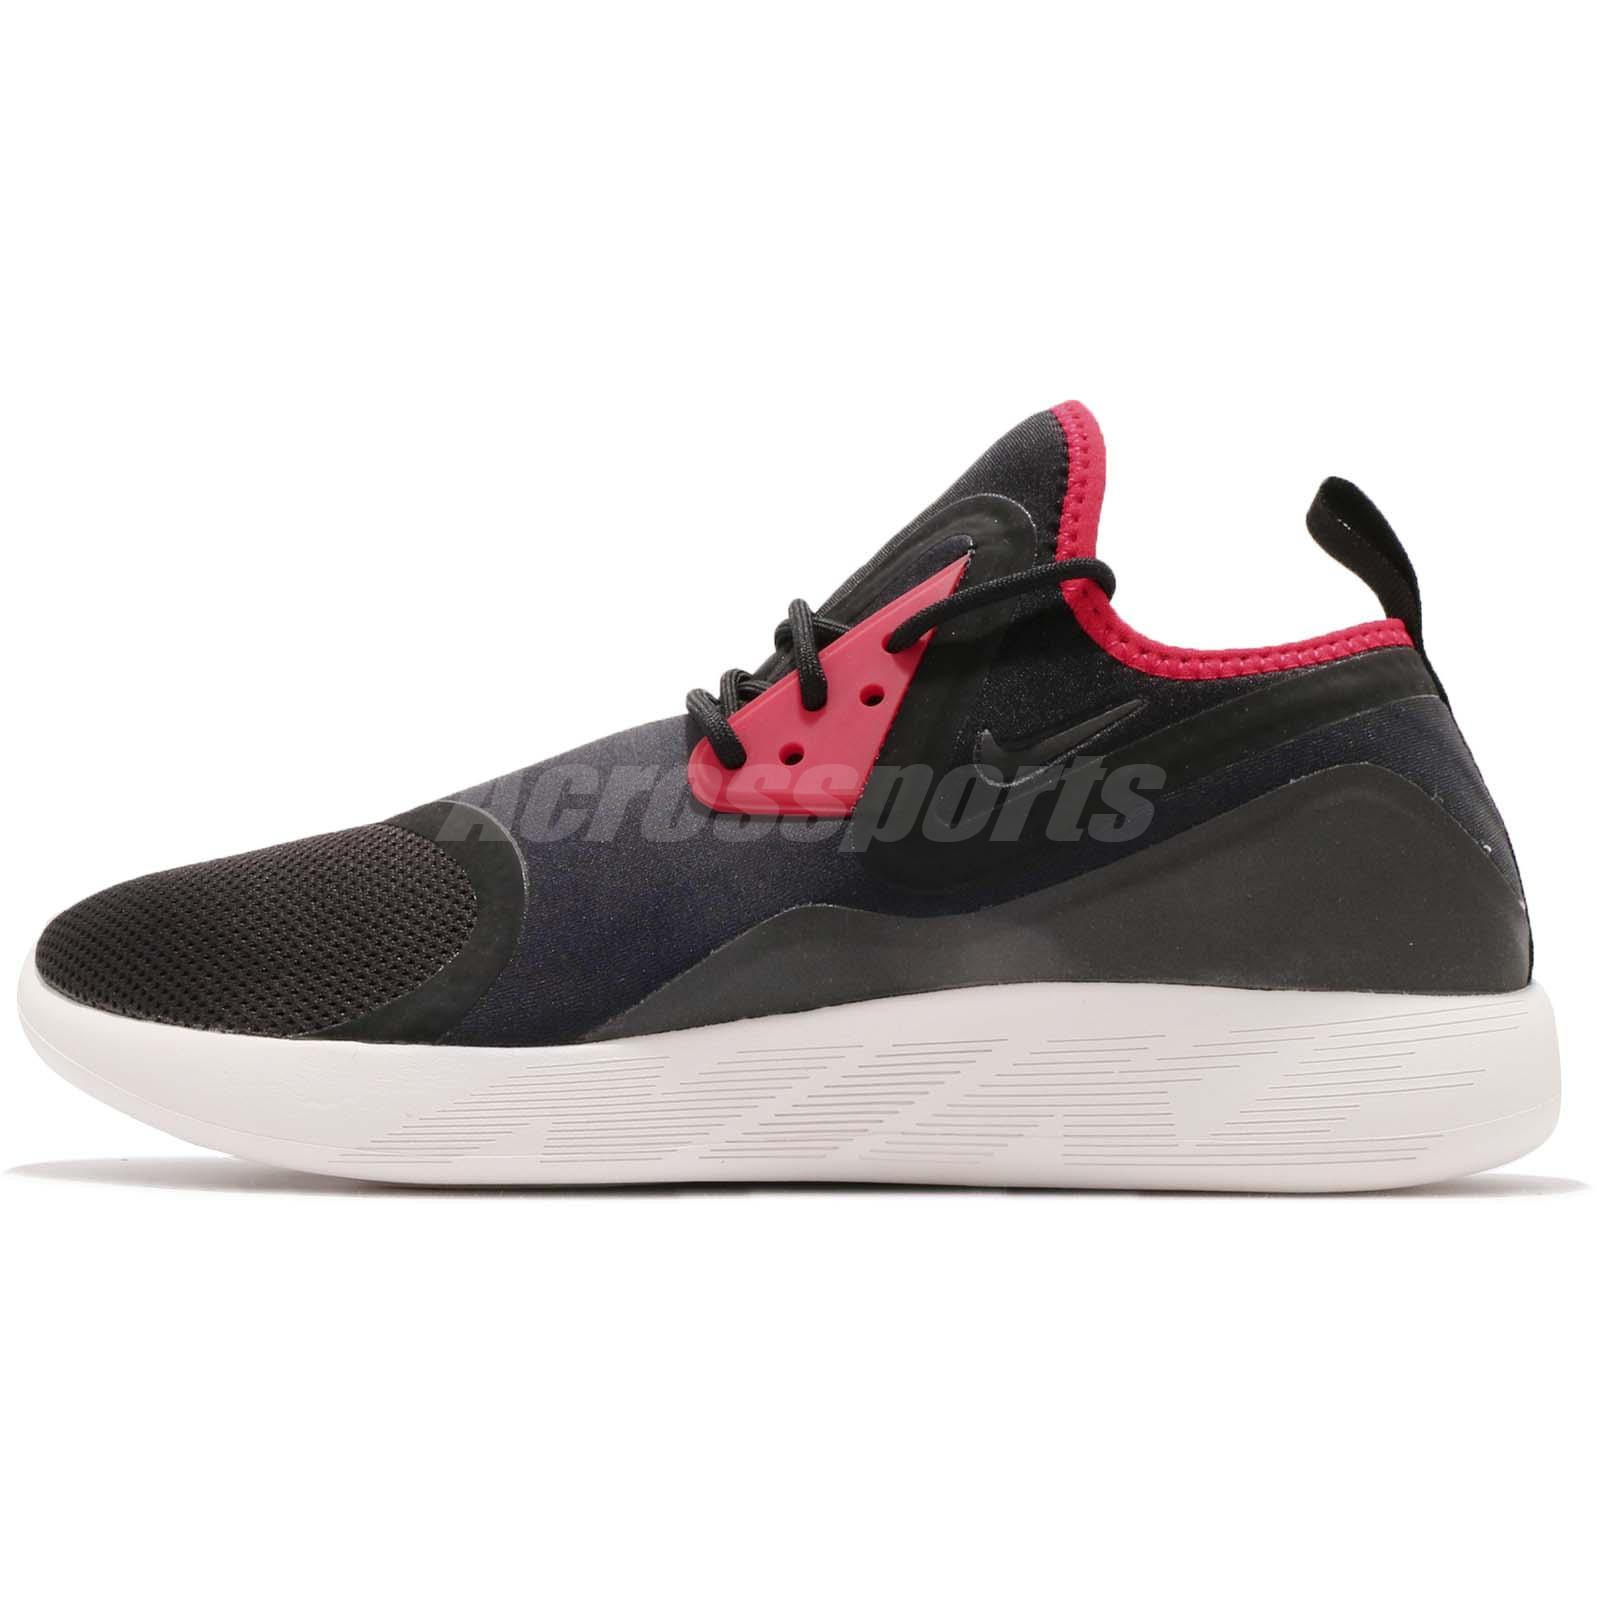 Nike Lunarcharge Essential Black Red Men Running Shoes Sneakers 923619-008 ad54731a9